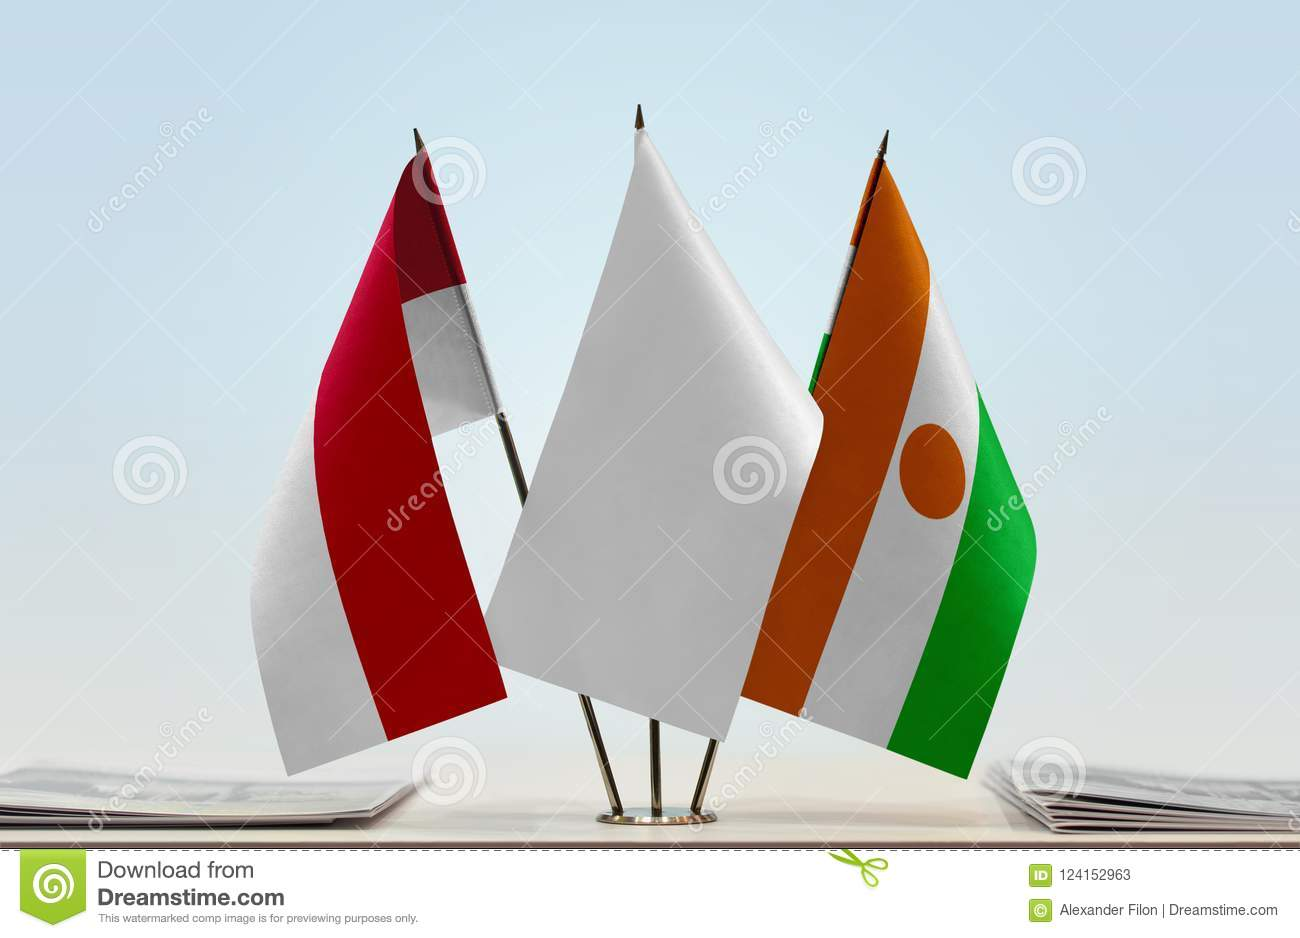 Flags of Monaco and Niger